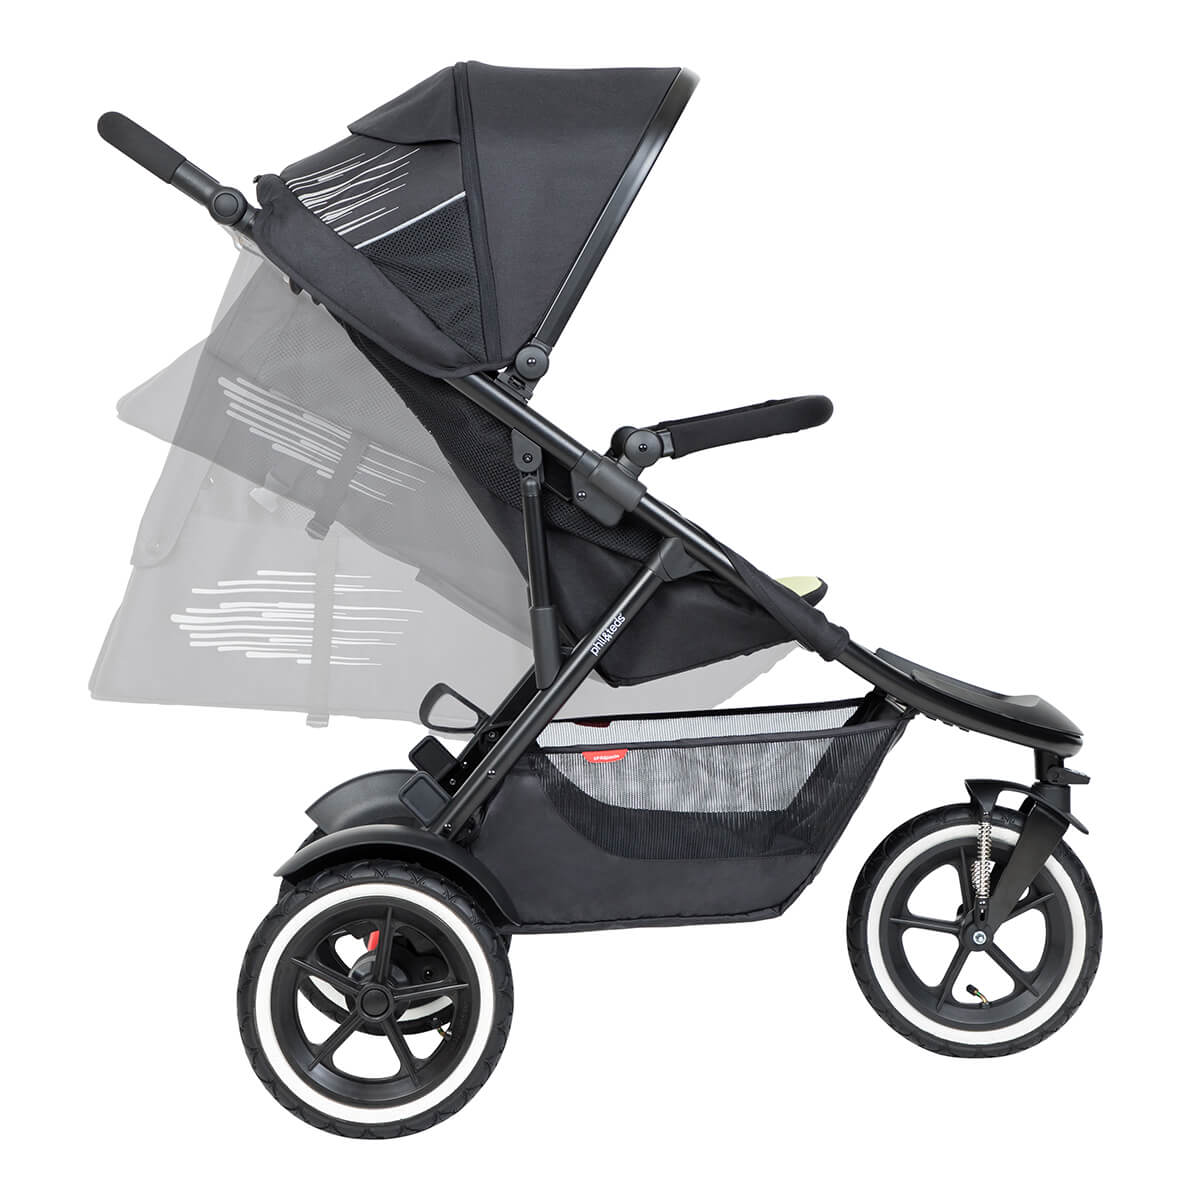 https://cdn.accentuate.io/4509528588376/19272668184664/philteds-sport-poussette-can-recline-in-multiple-angles-including-full-recline-for-newborn-baby-v1626484500093.jpg?1200x1200